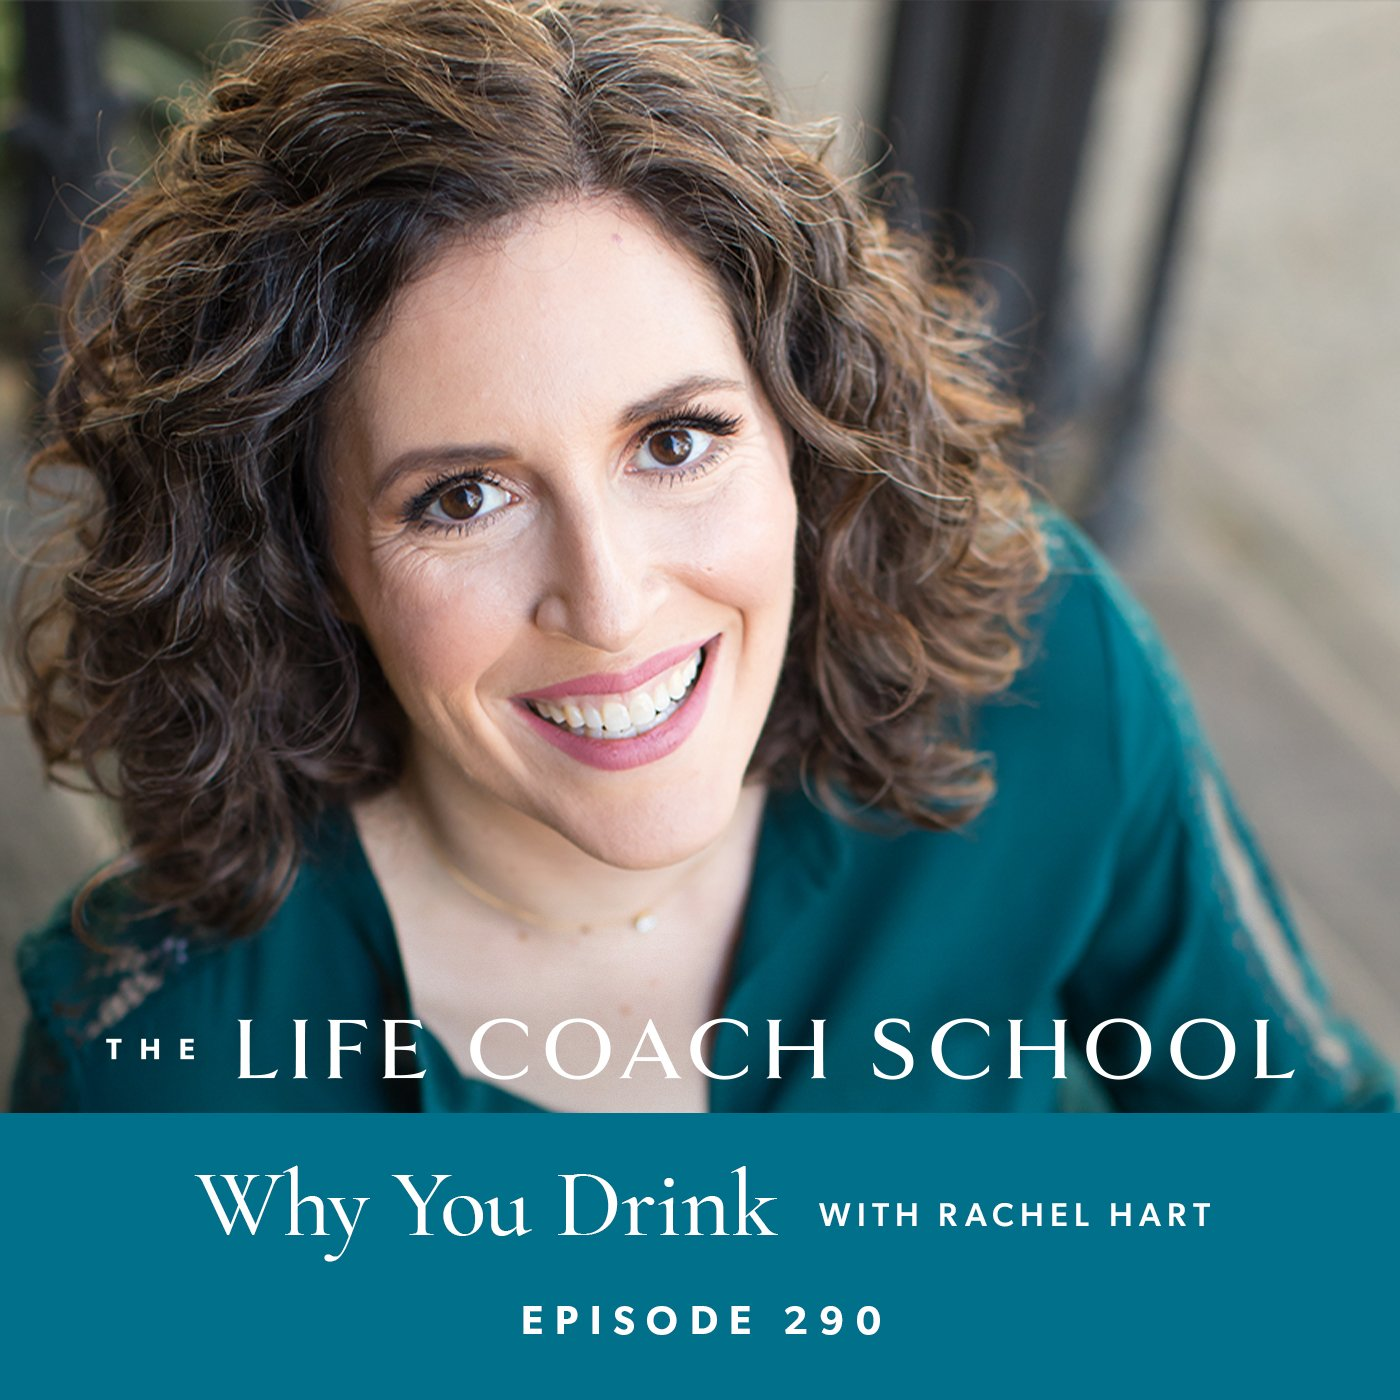 The Life Coach School Podcast with Brooke Castillo | Episode 290 | Why You Drink with Rachel Hart